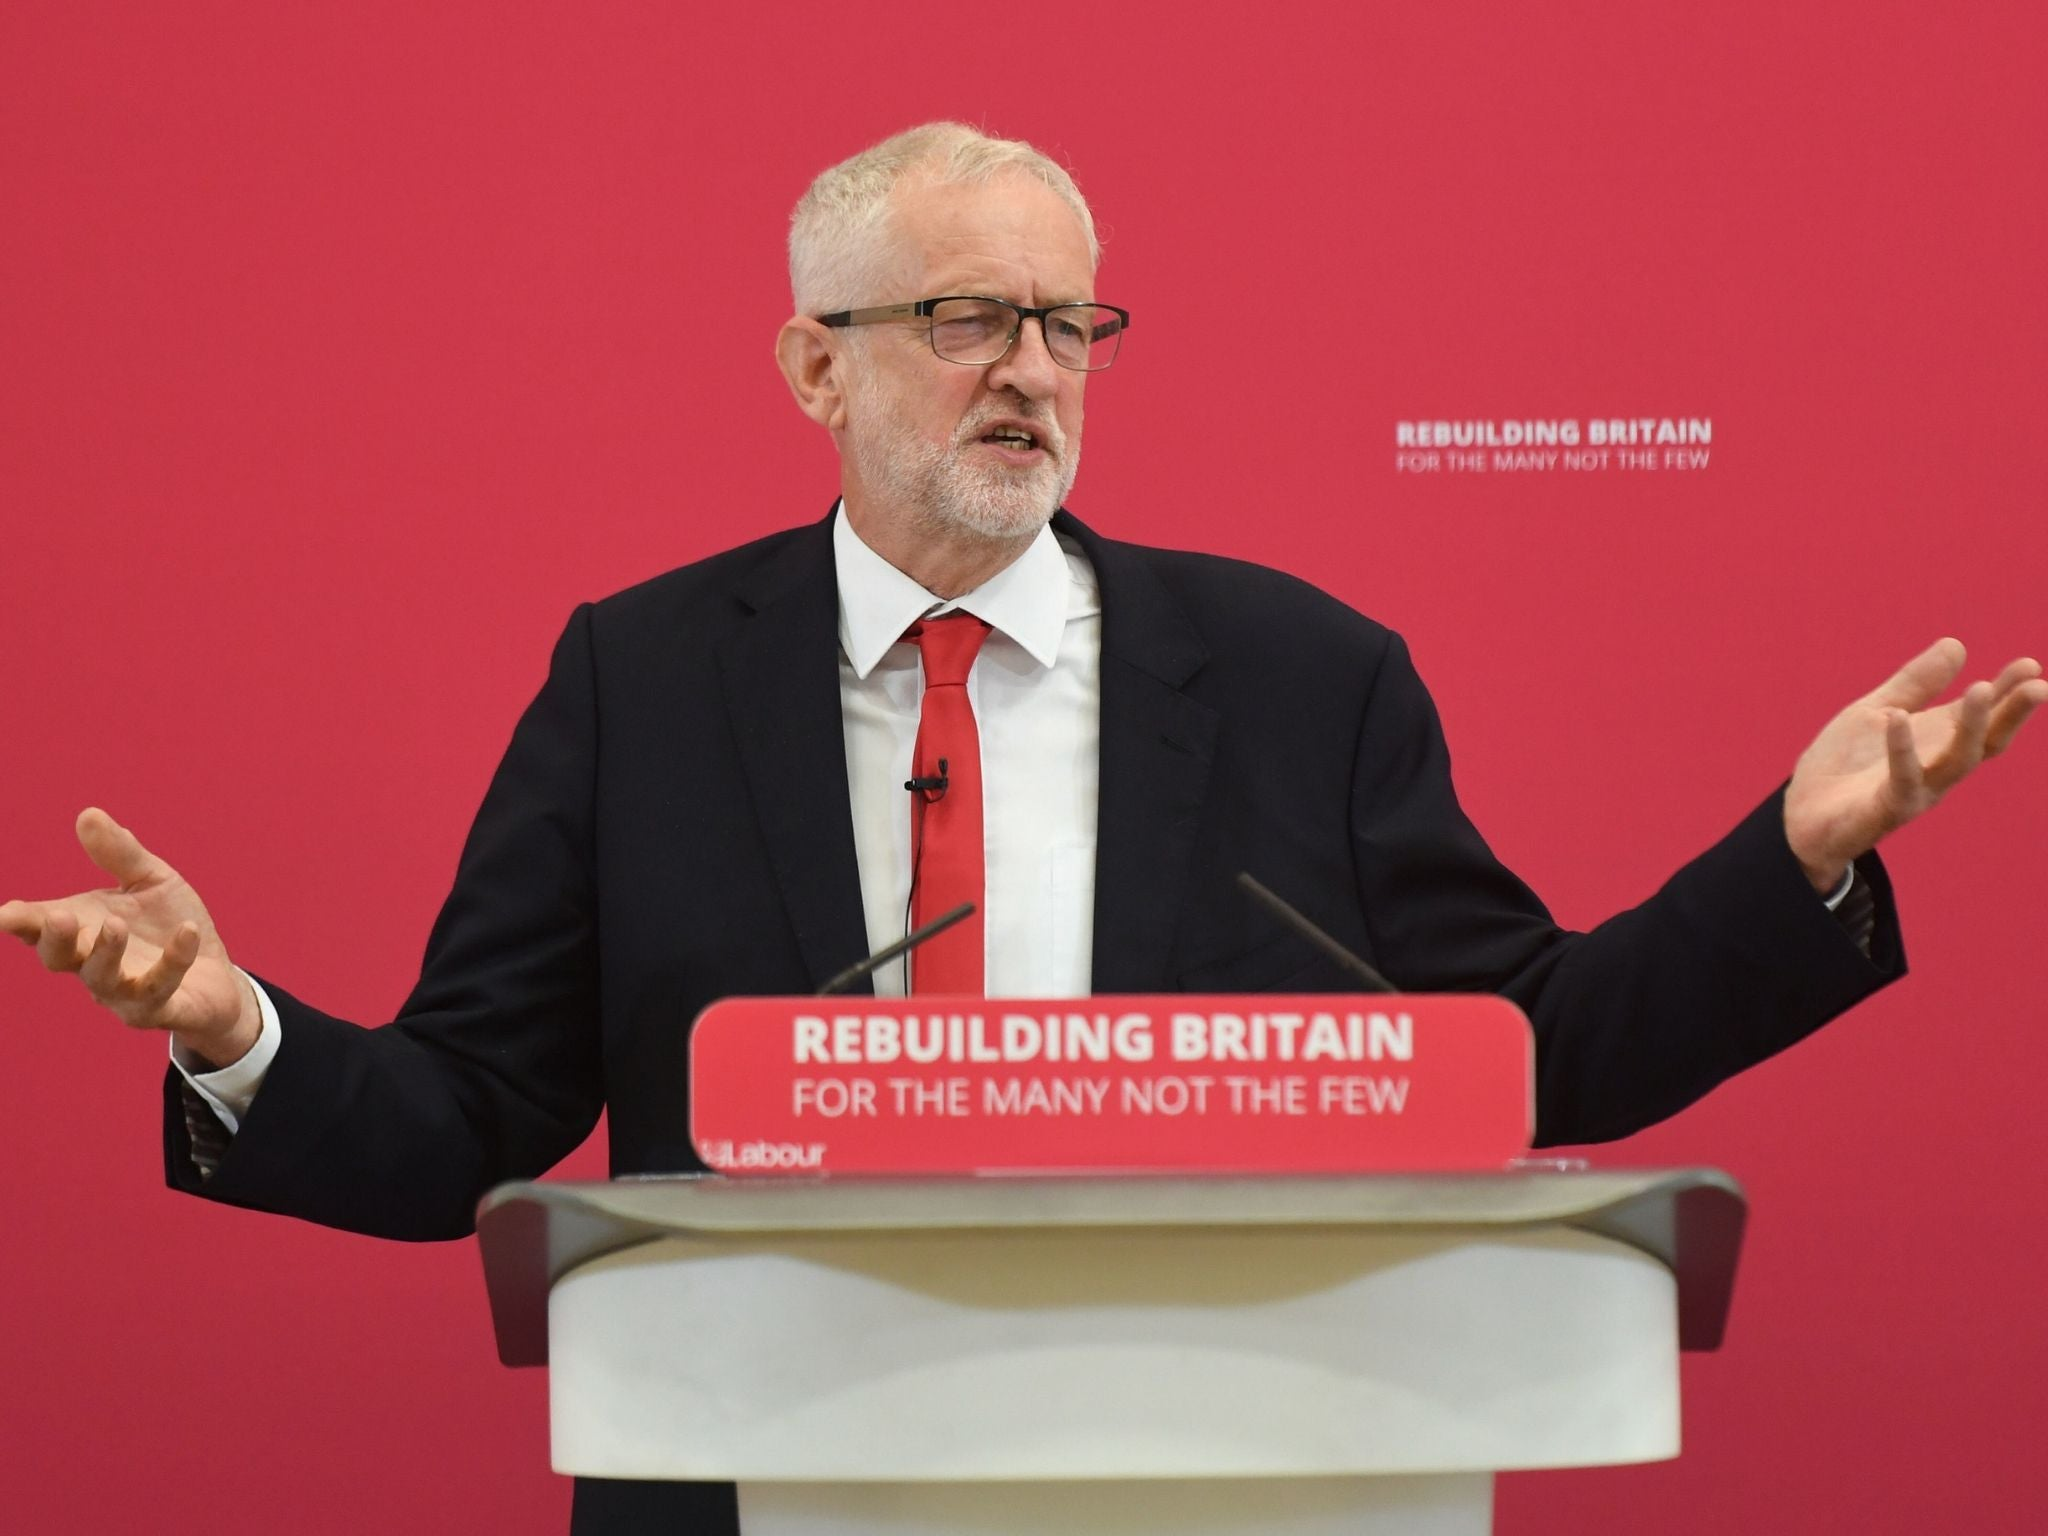 Jeremy Corbyn's latest Brexit strategy: I don't care about Brexit and neither should you